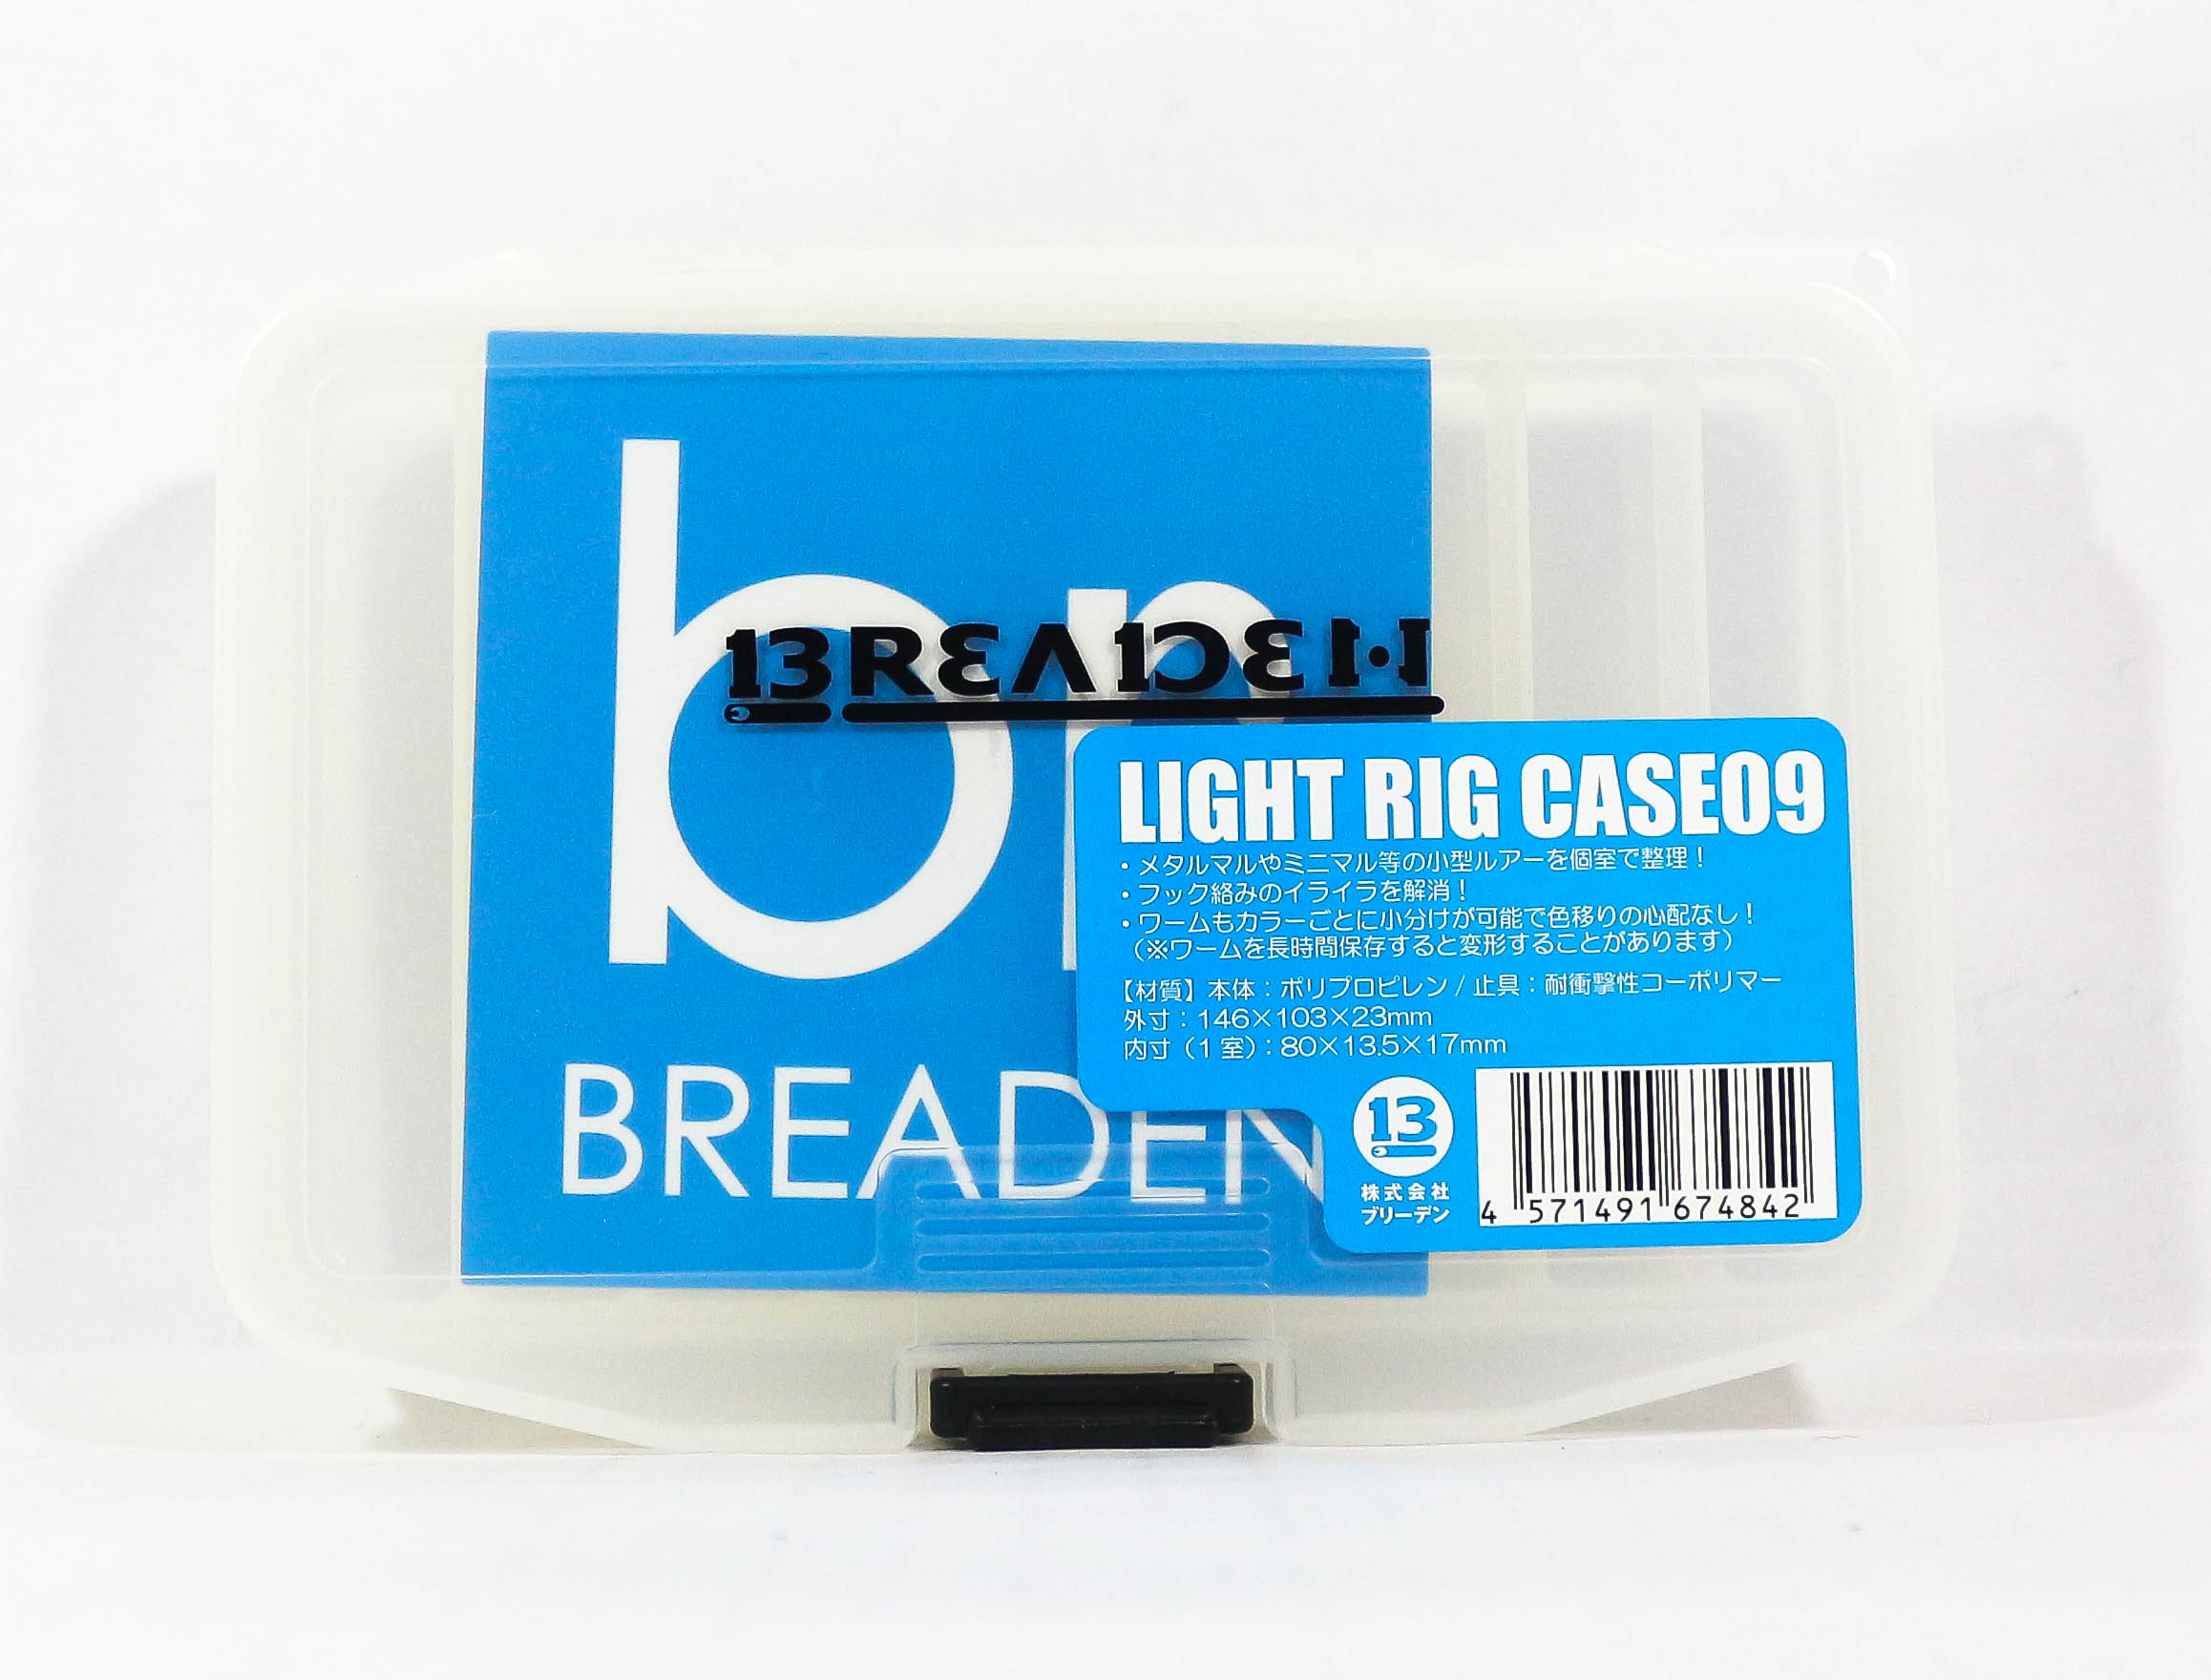 Breaden Light Rig Case 09 146 x 103 x 23 mm (4842)